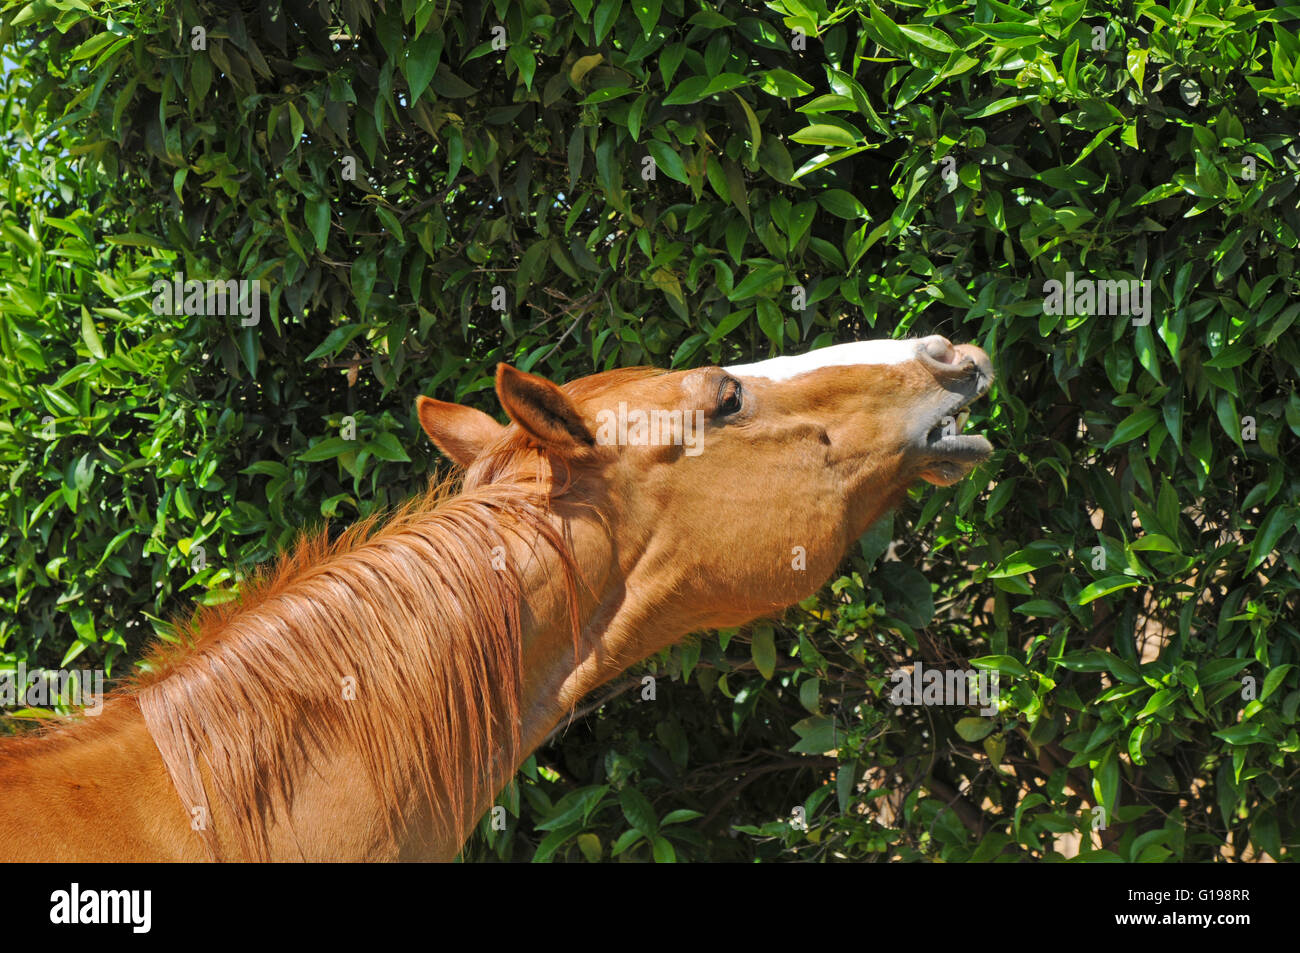 Horse eat leaves from a bush - Stock Image